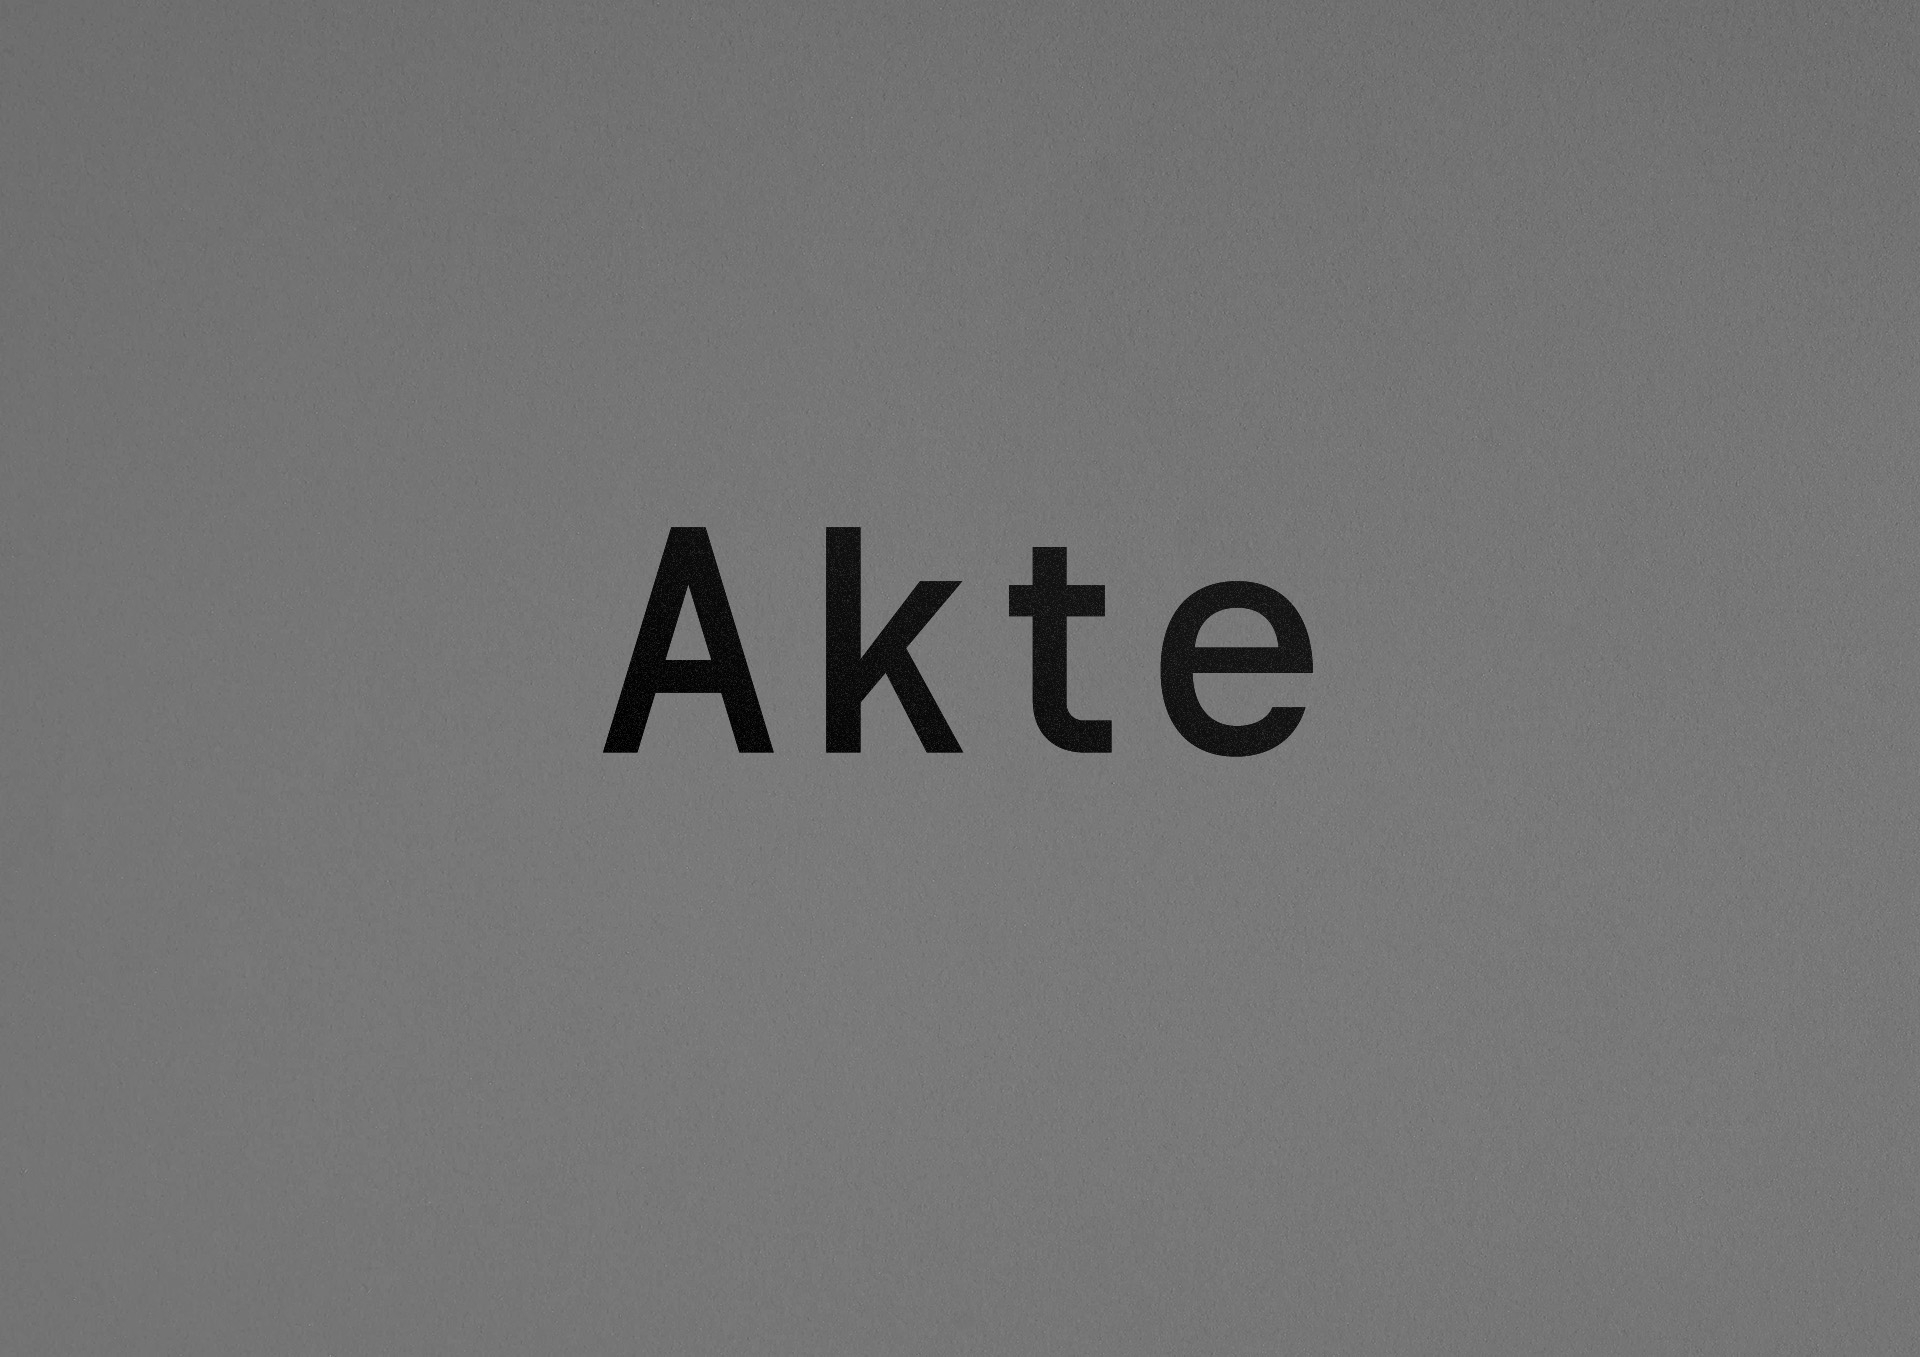 Malwin Béla Hürkey — Visual Communication Akte — Type Design